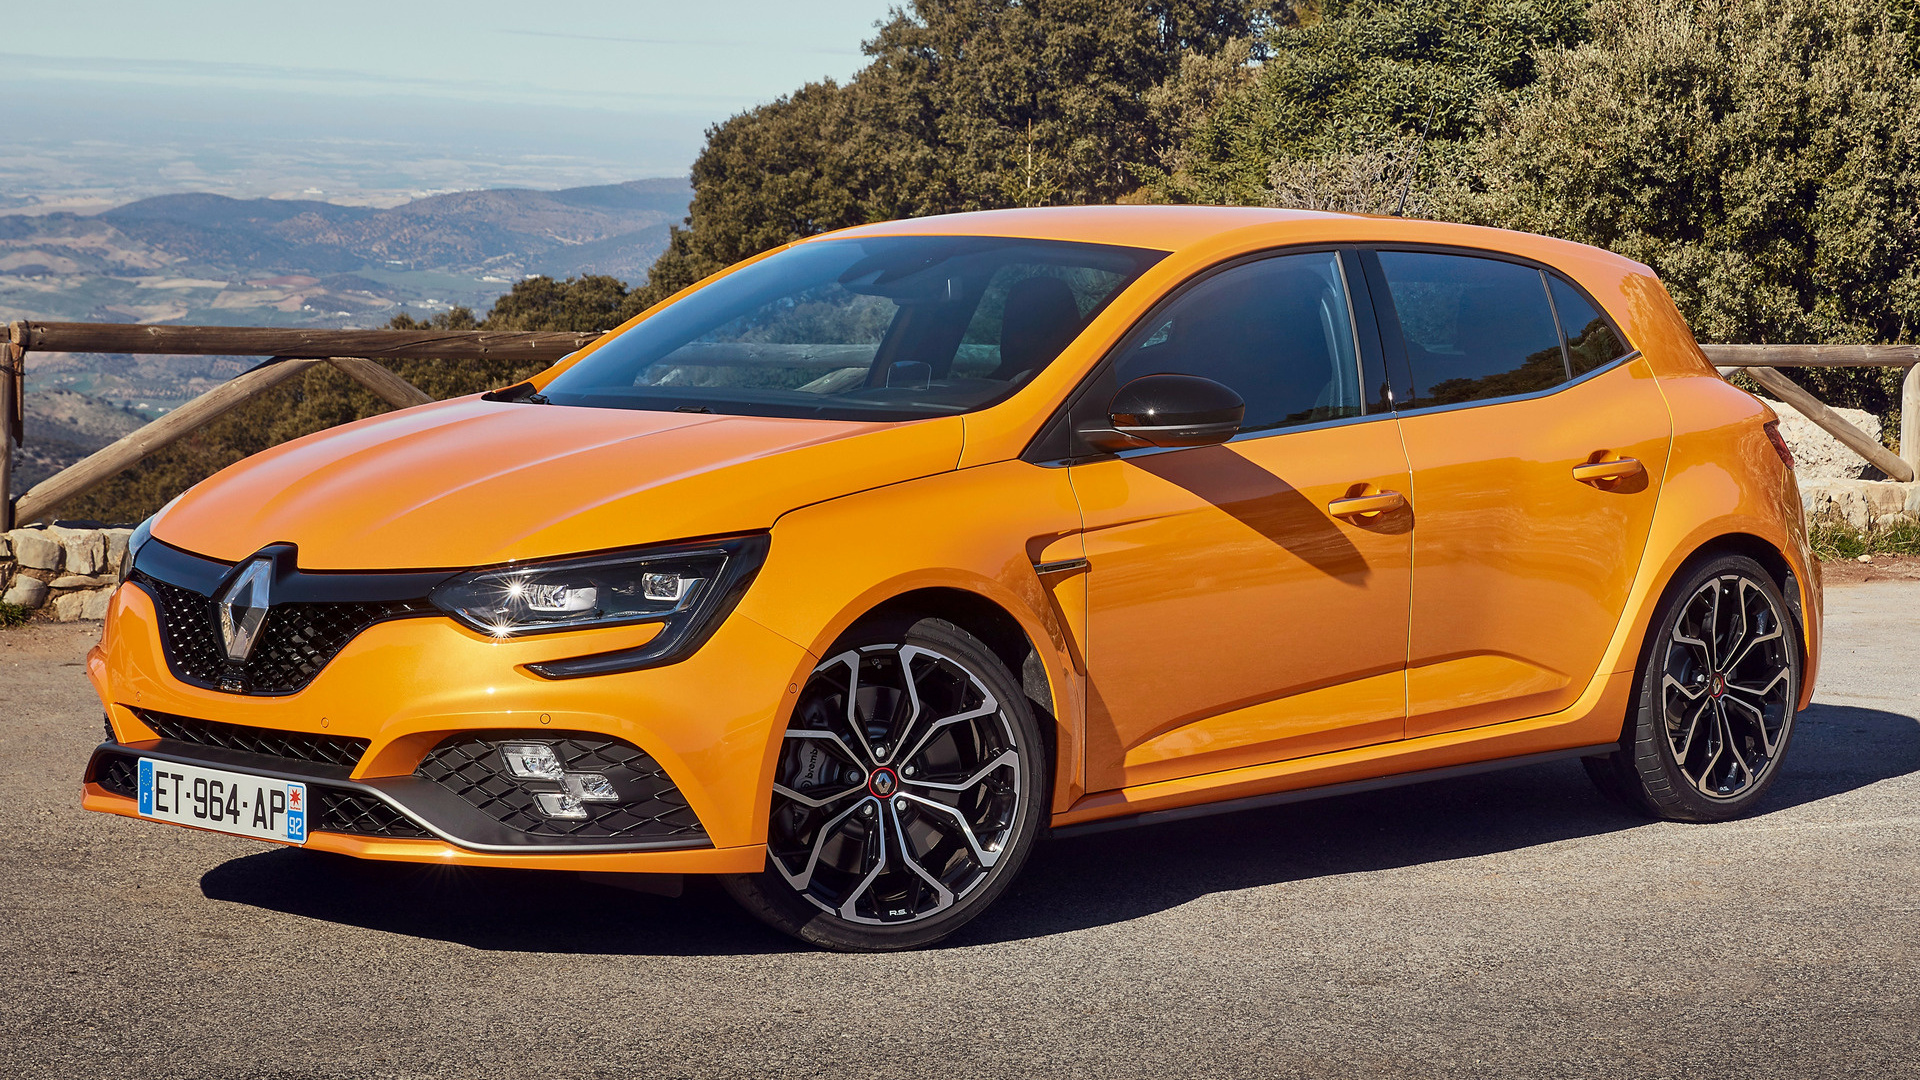 2018 Renault Megane Rs Wallpapers And Hd Images Car Pixel Hd wallpaper renault megane orange car